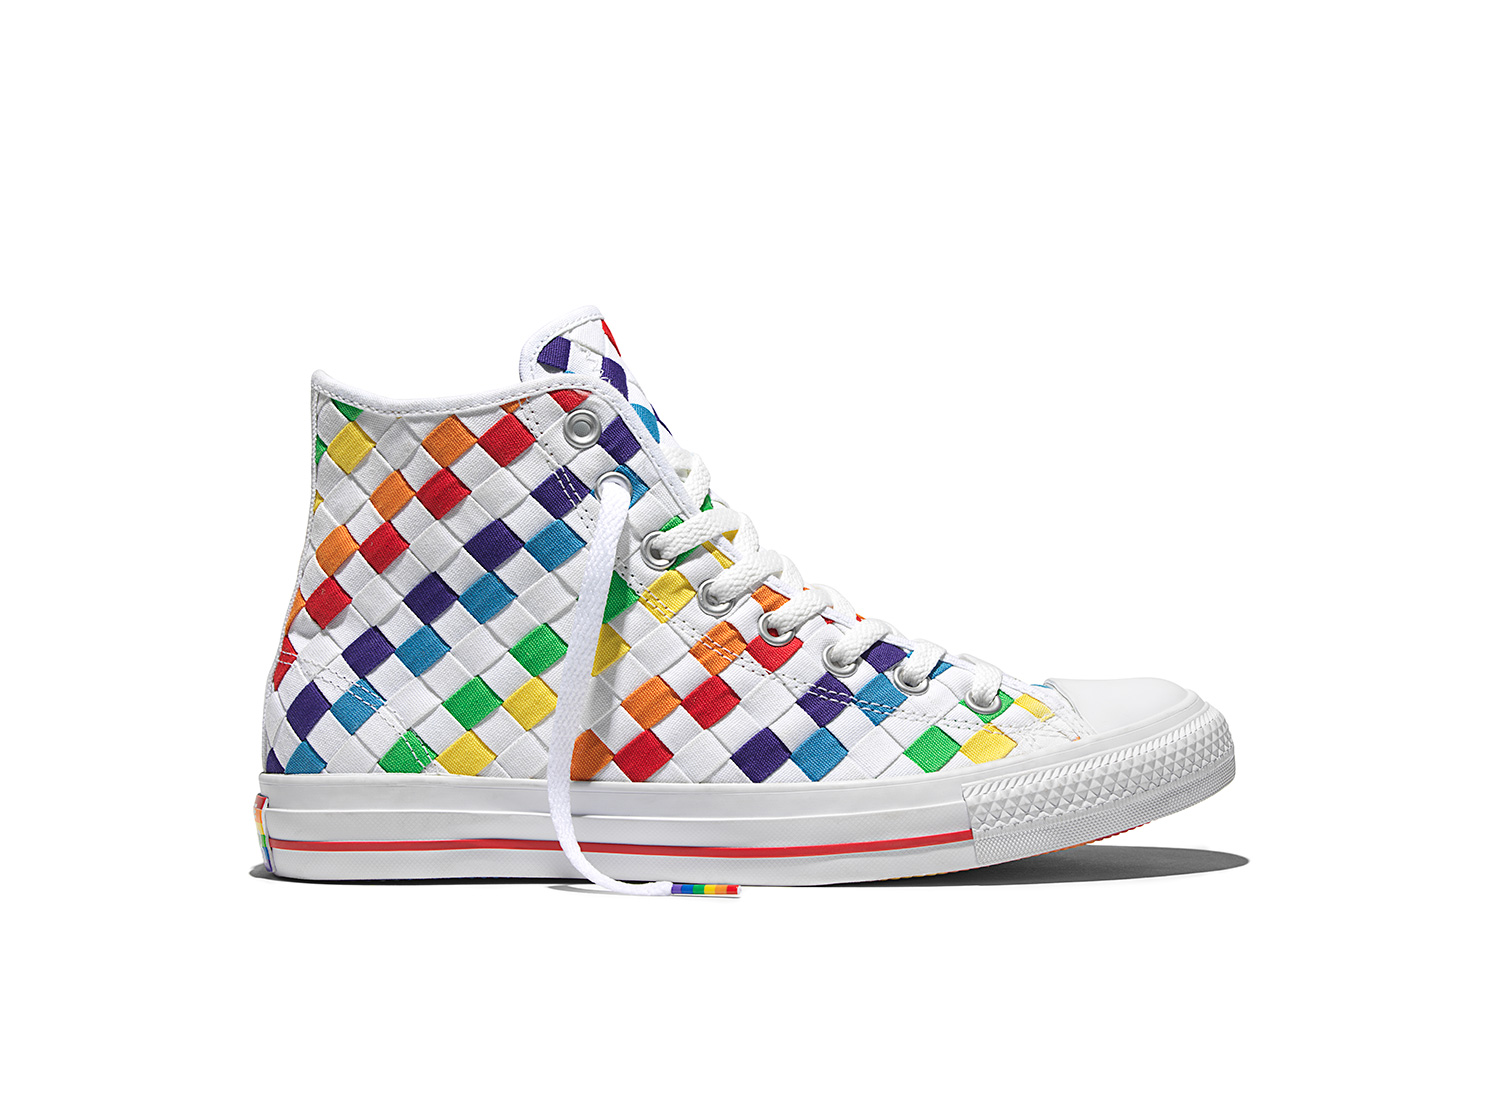 ba20964f32f5 2016 Converse Pride Collection with New Rainbow Design Chuck Taylor ...